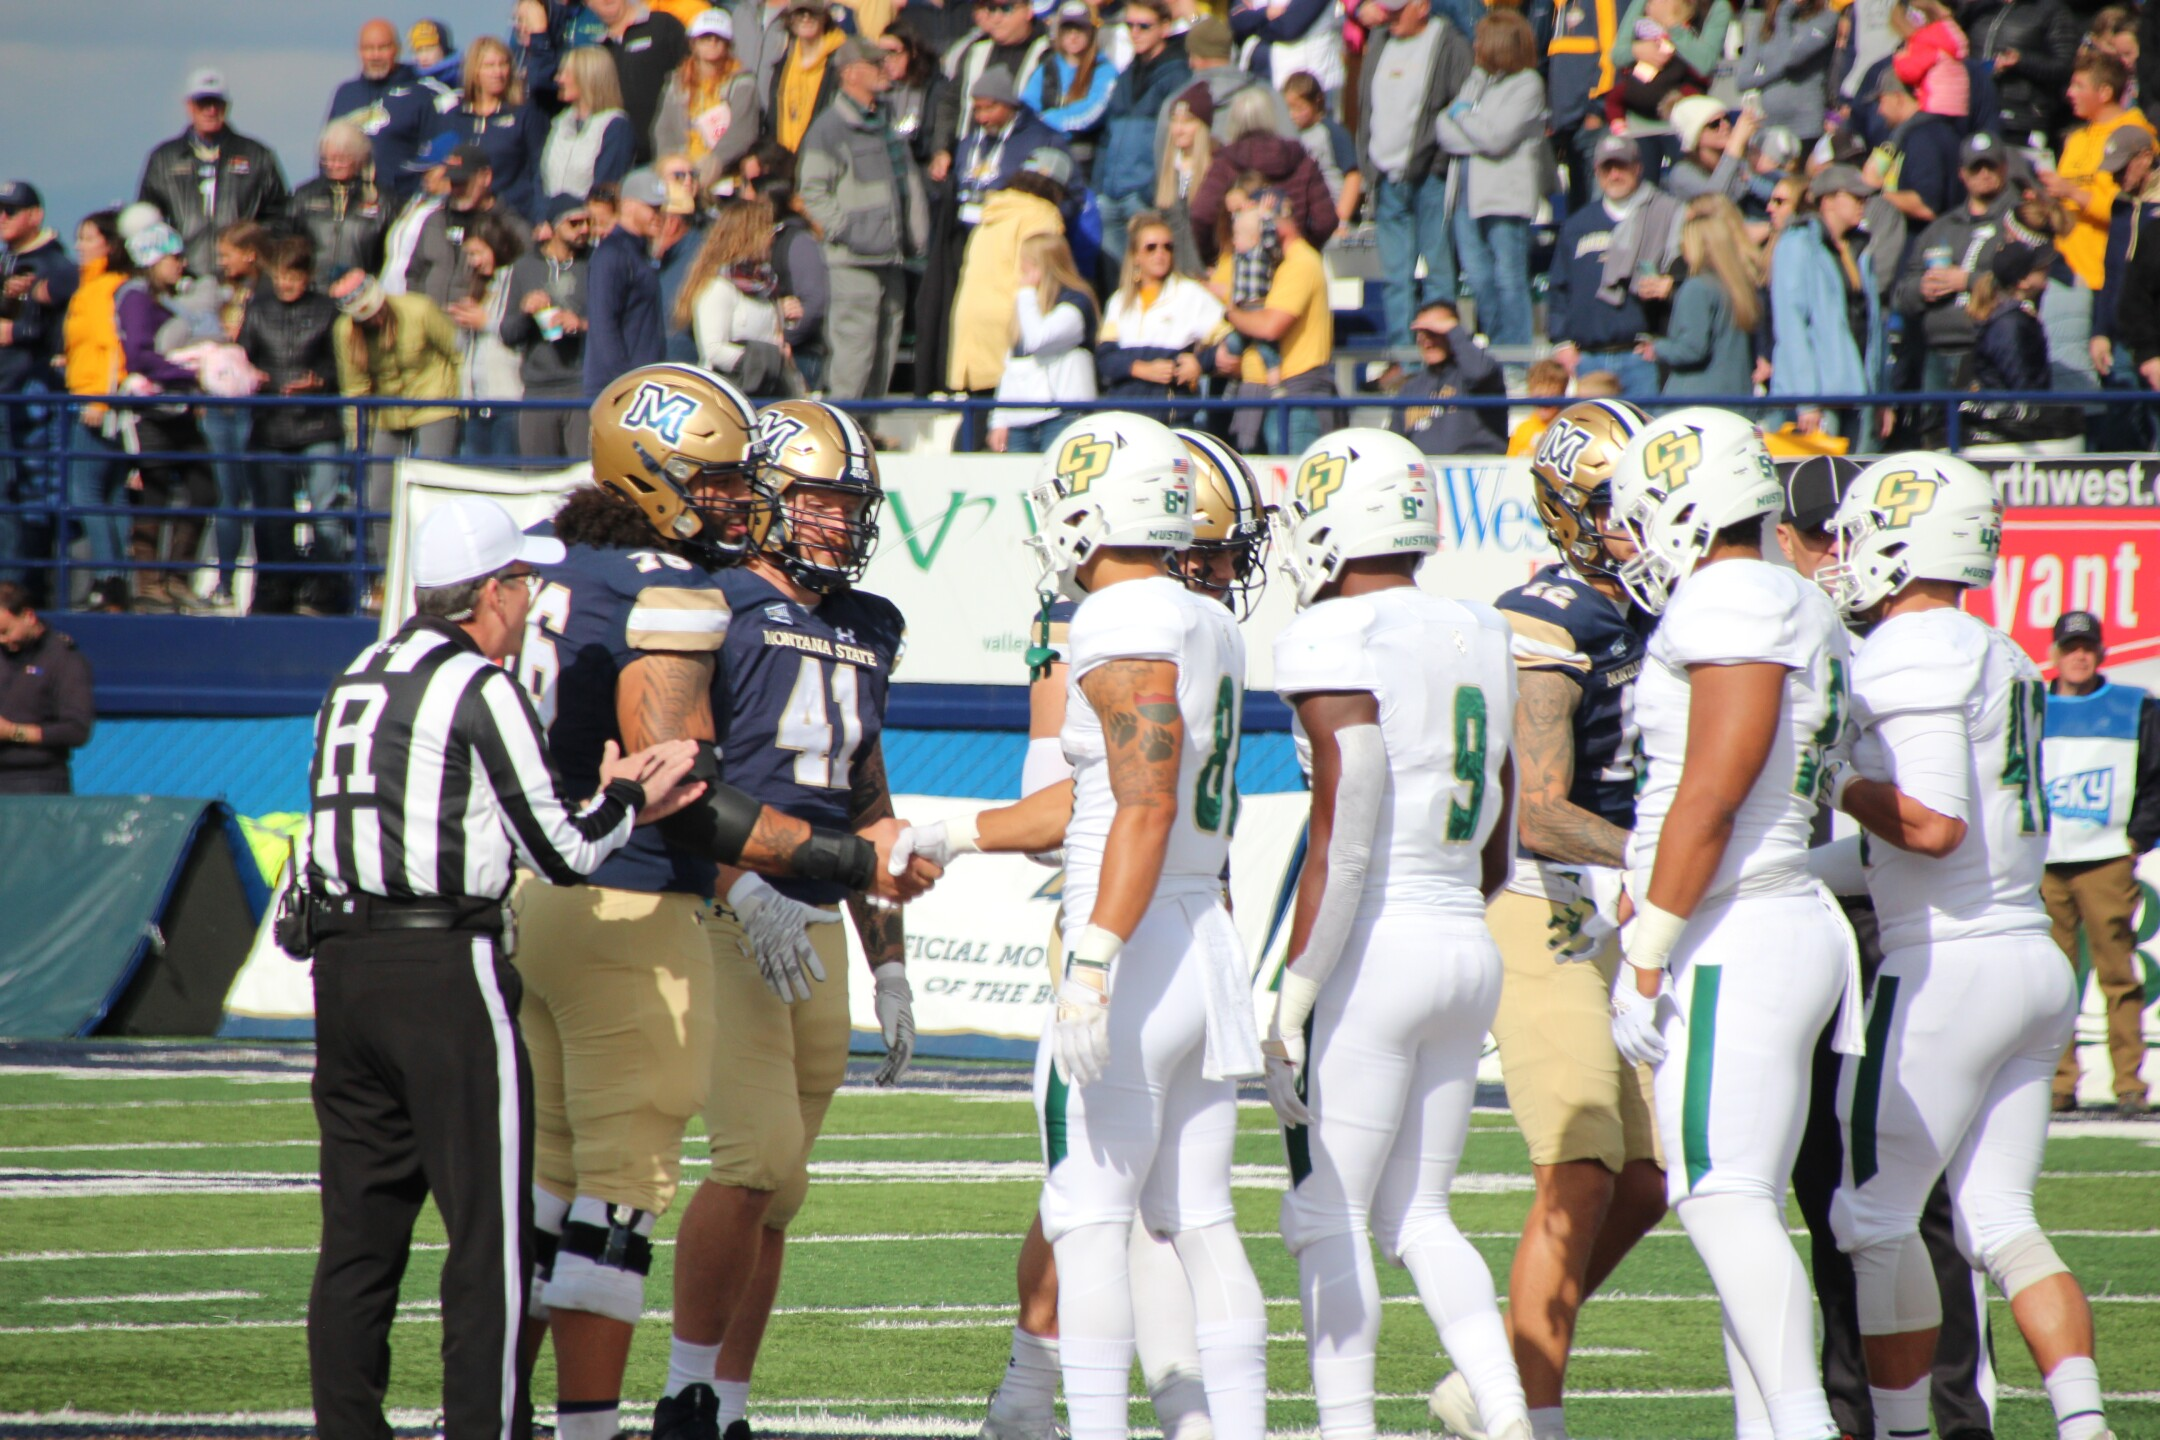 MSU Captains shake hands with Cal Poly before the game